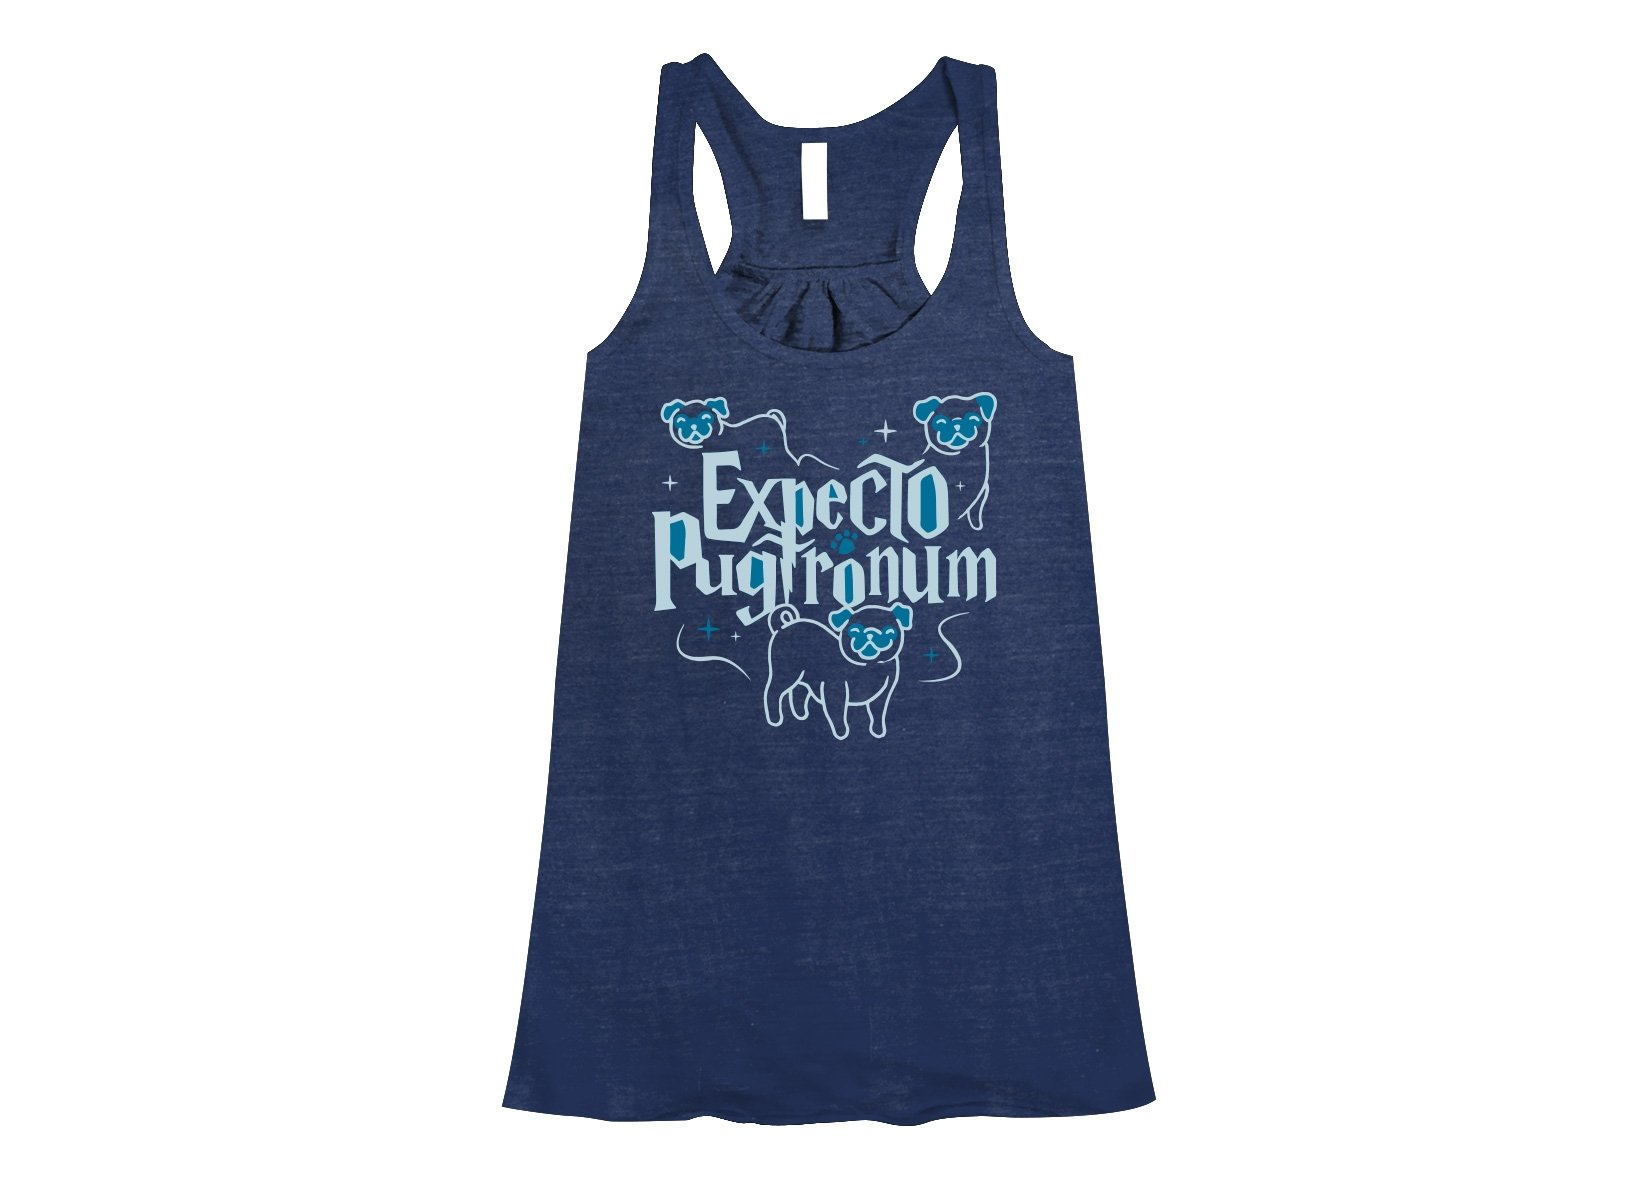 Expecto Pugtronum on Womens Tanks T-Shirt